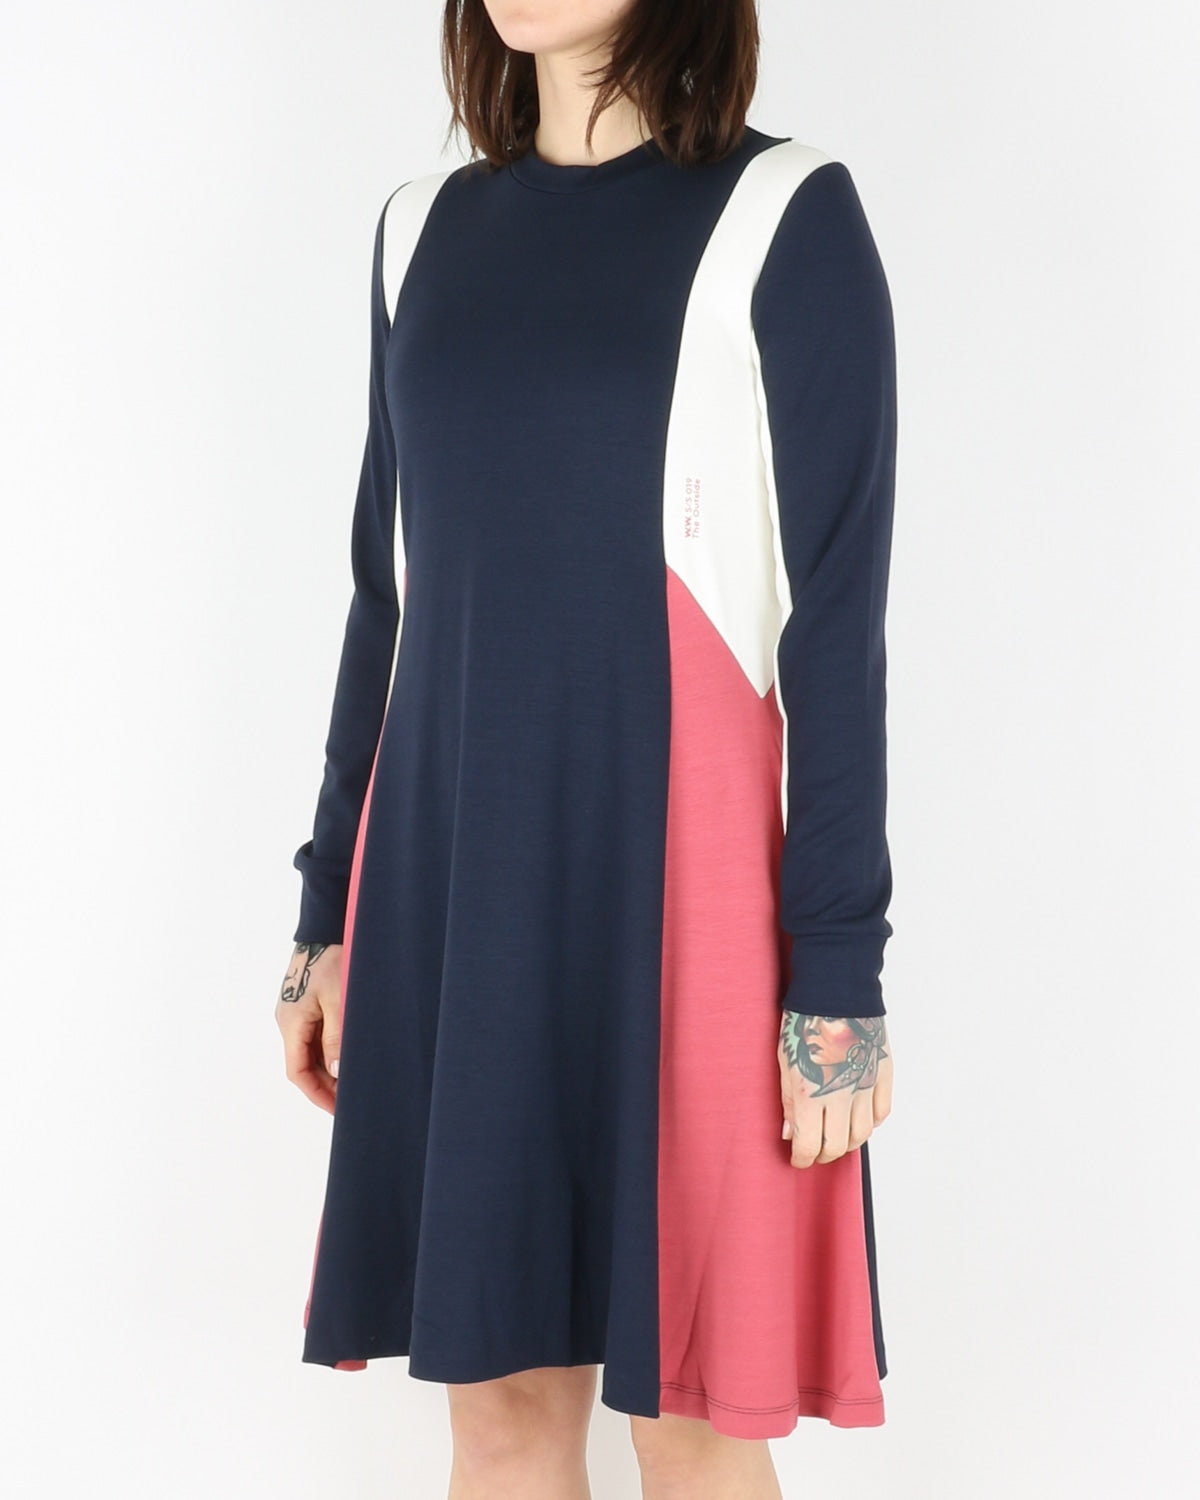 wood wood_mandy dress_navy colorblock_view_2_4